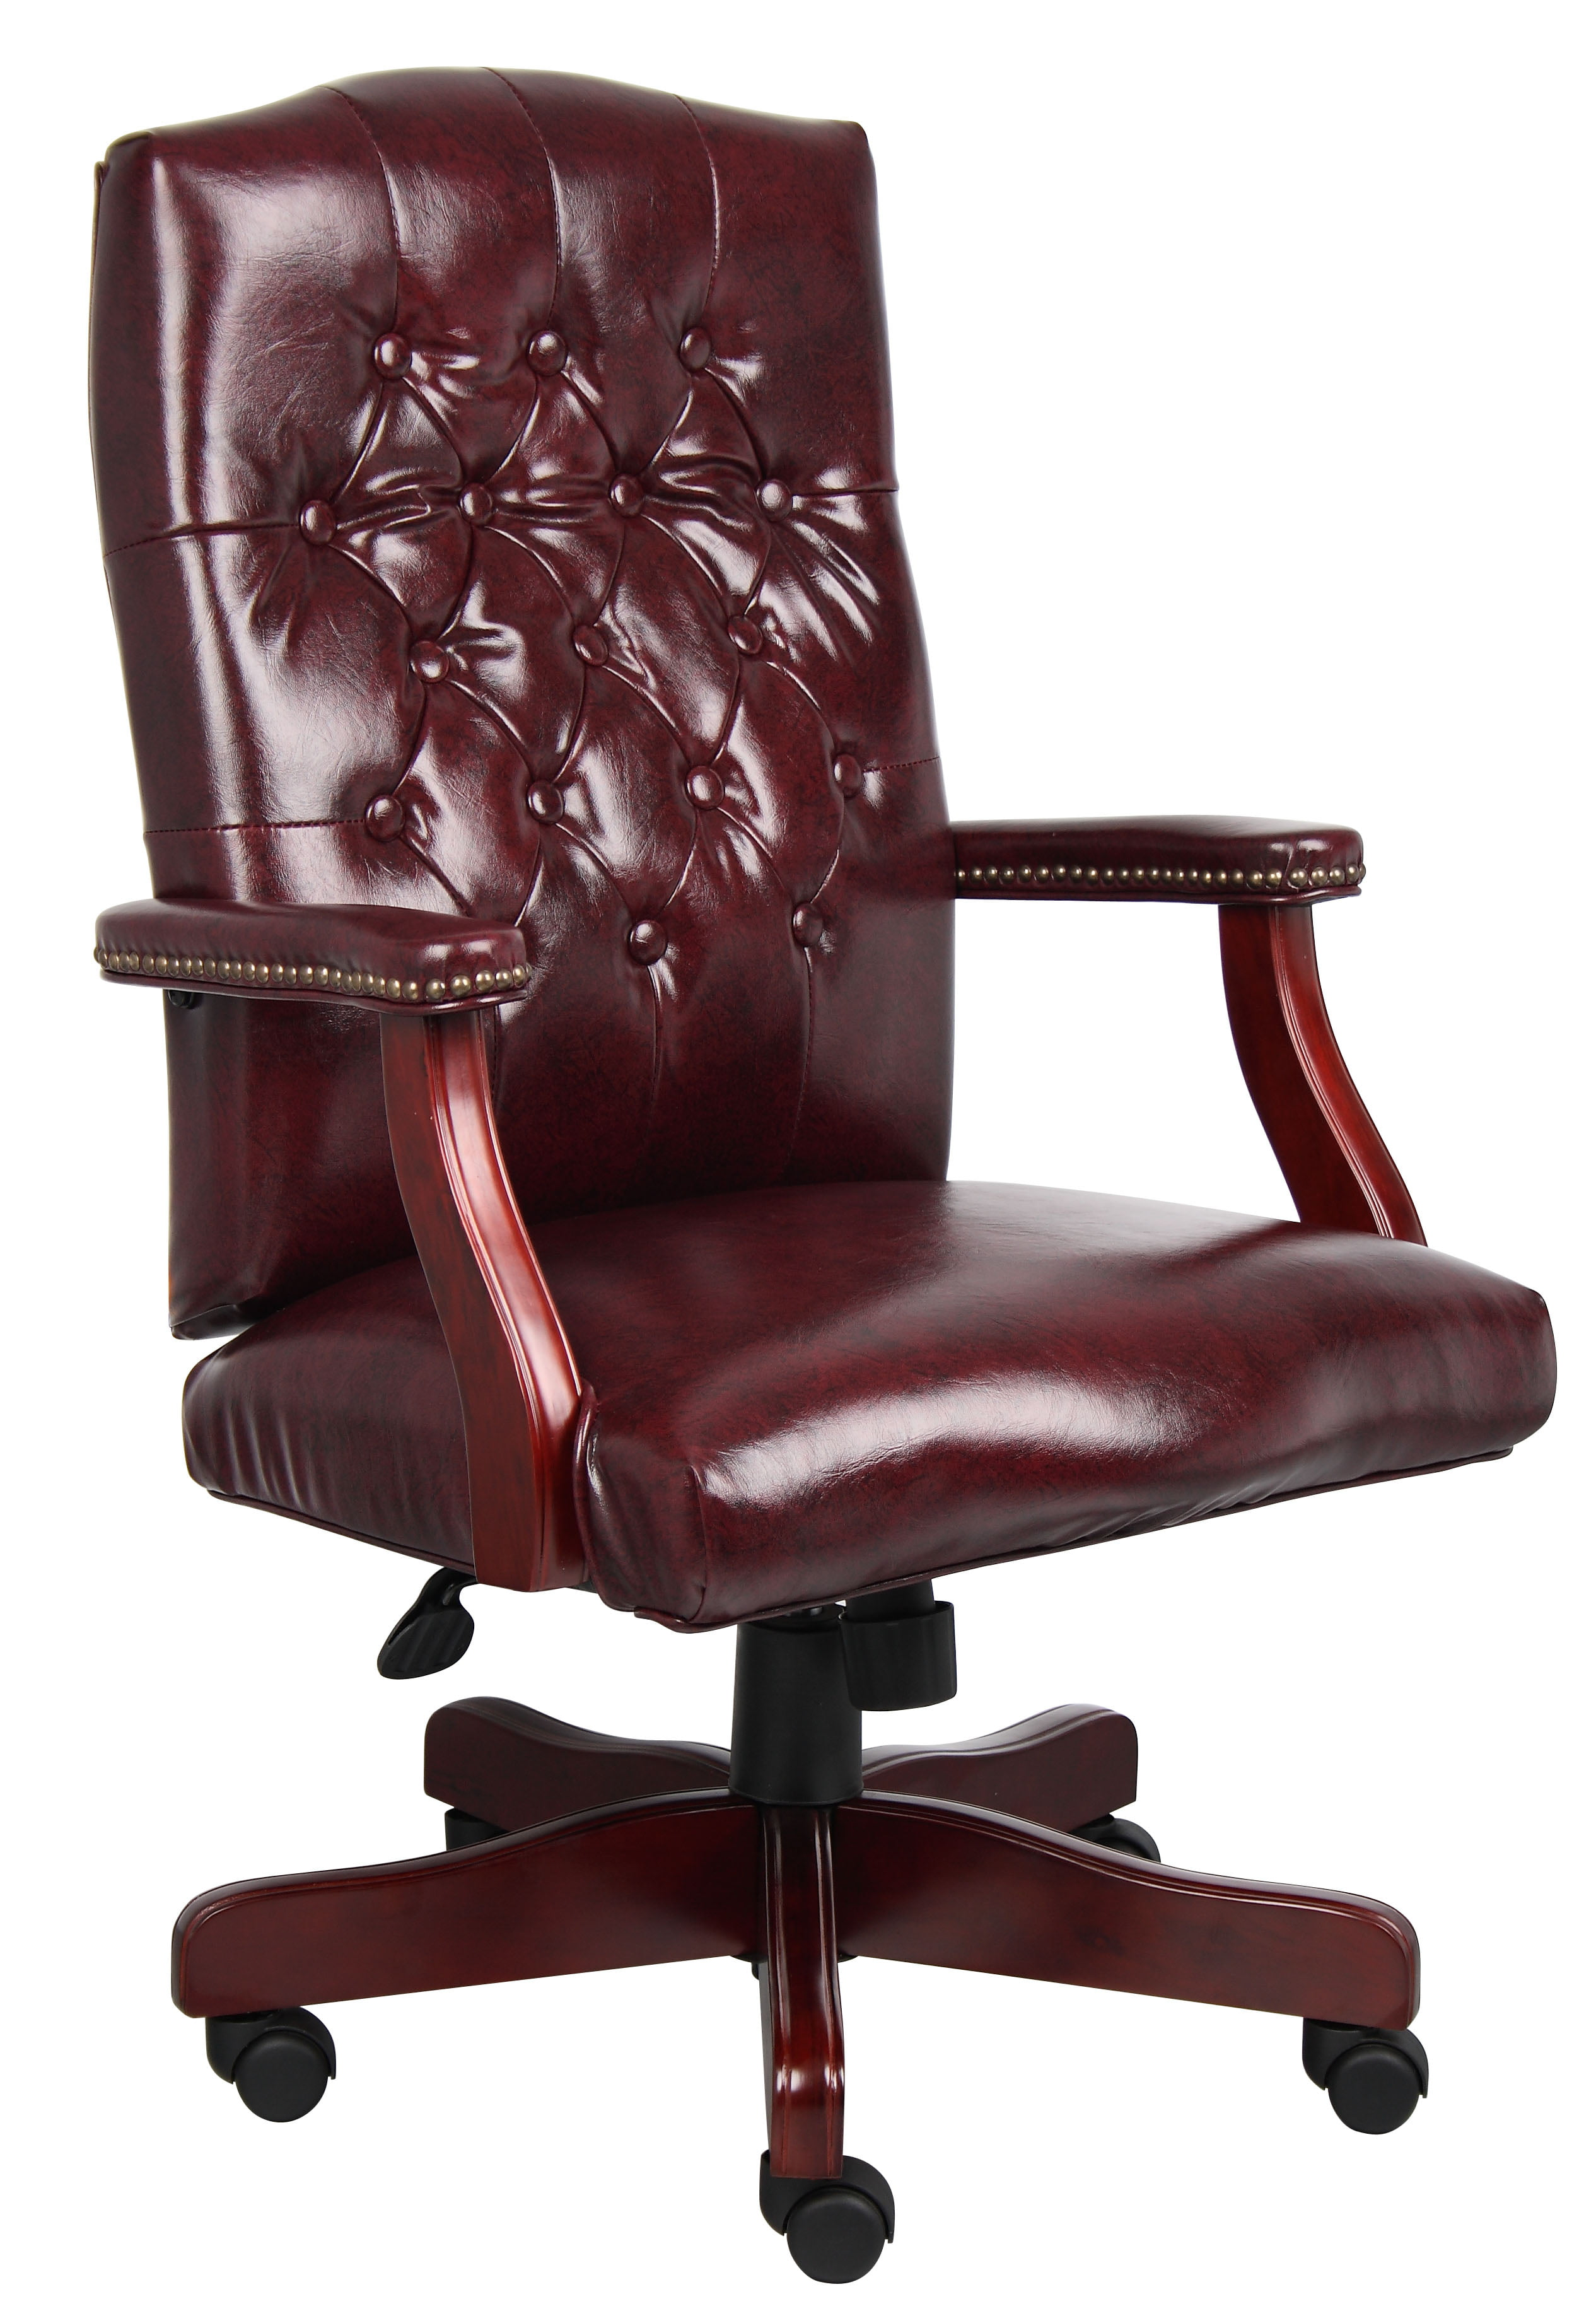 Boss Office Home Traditional High Back Executive Swivel Chair